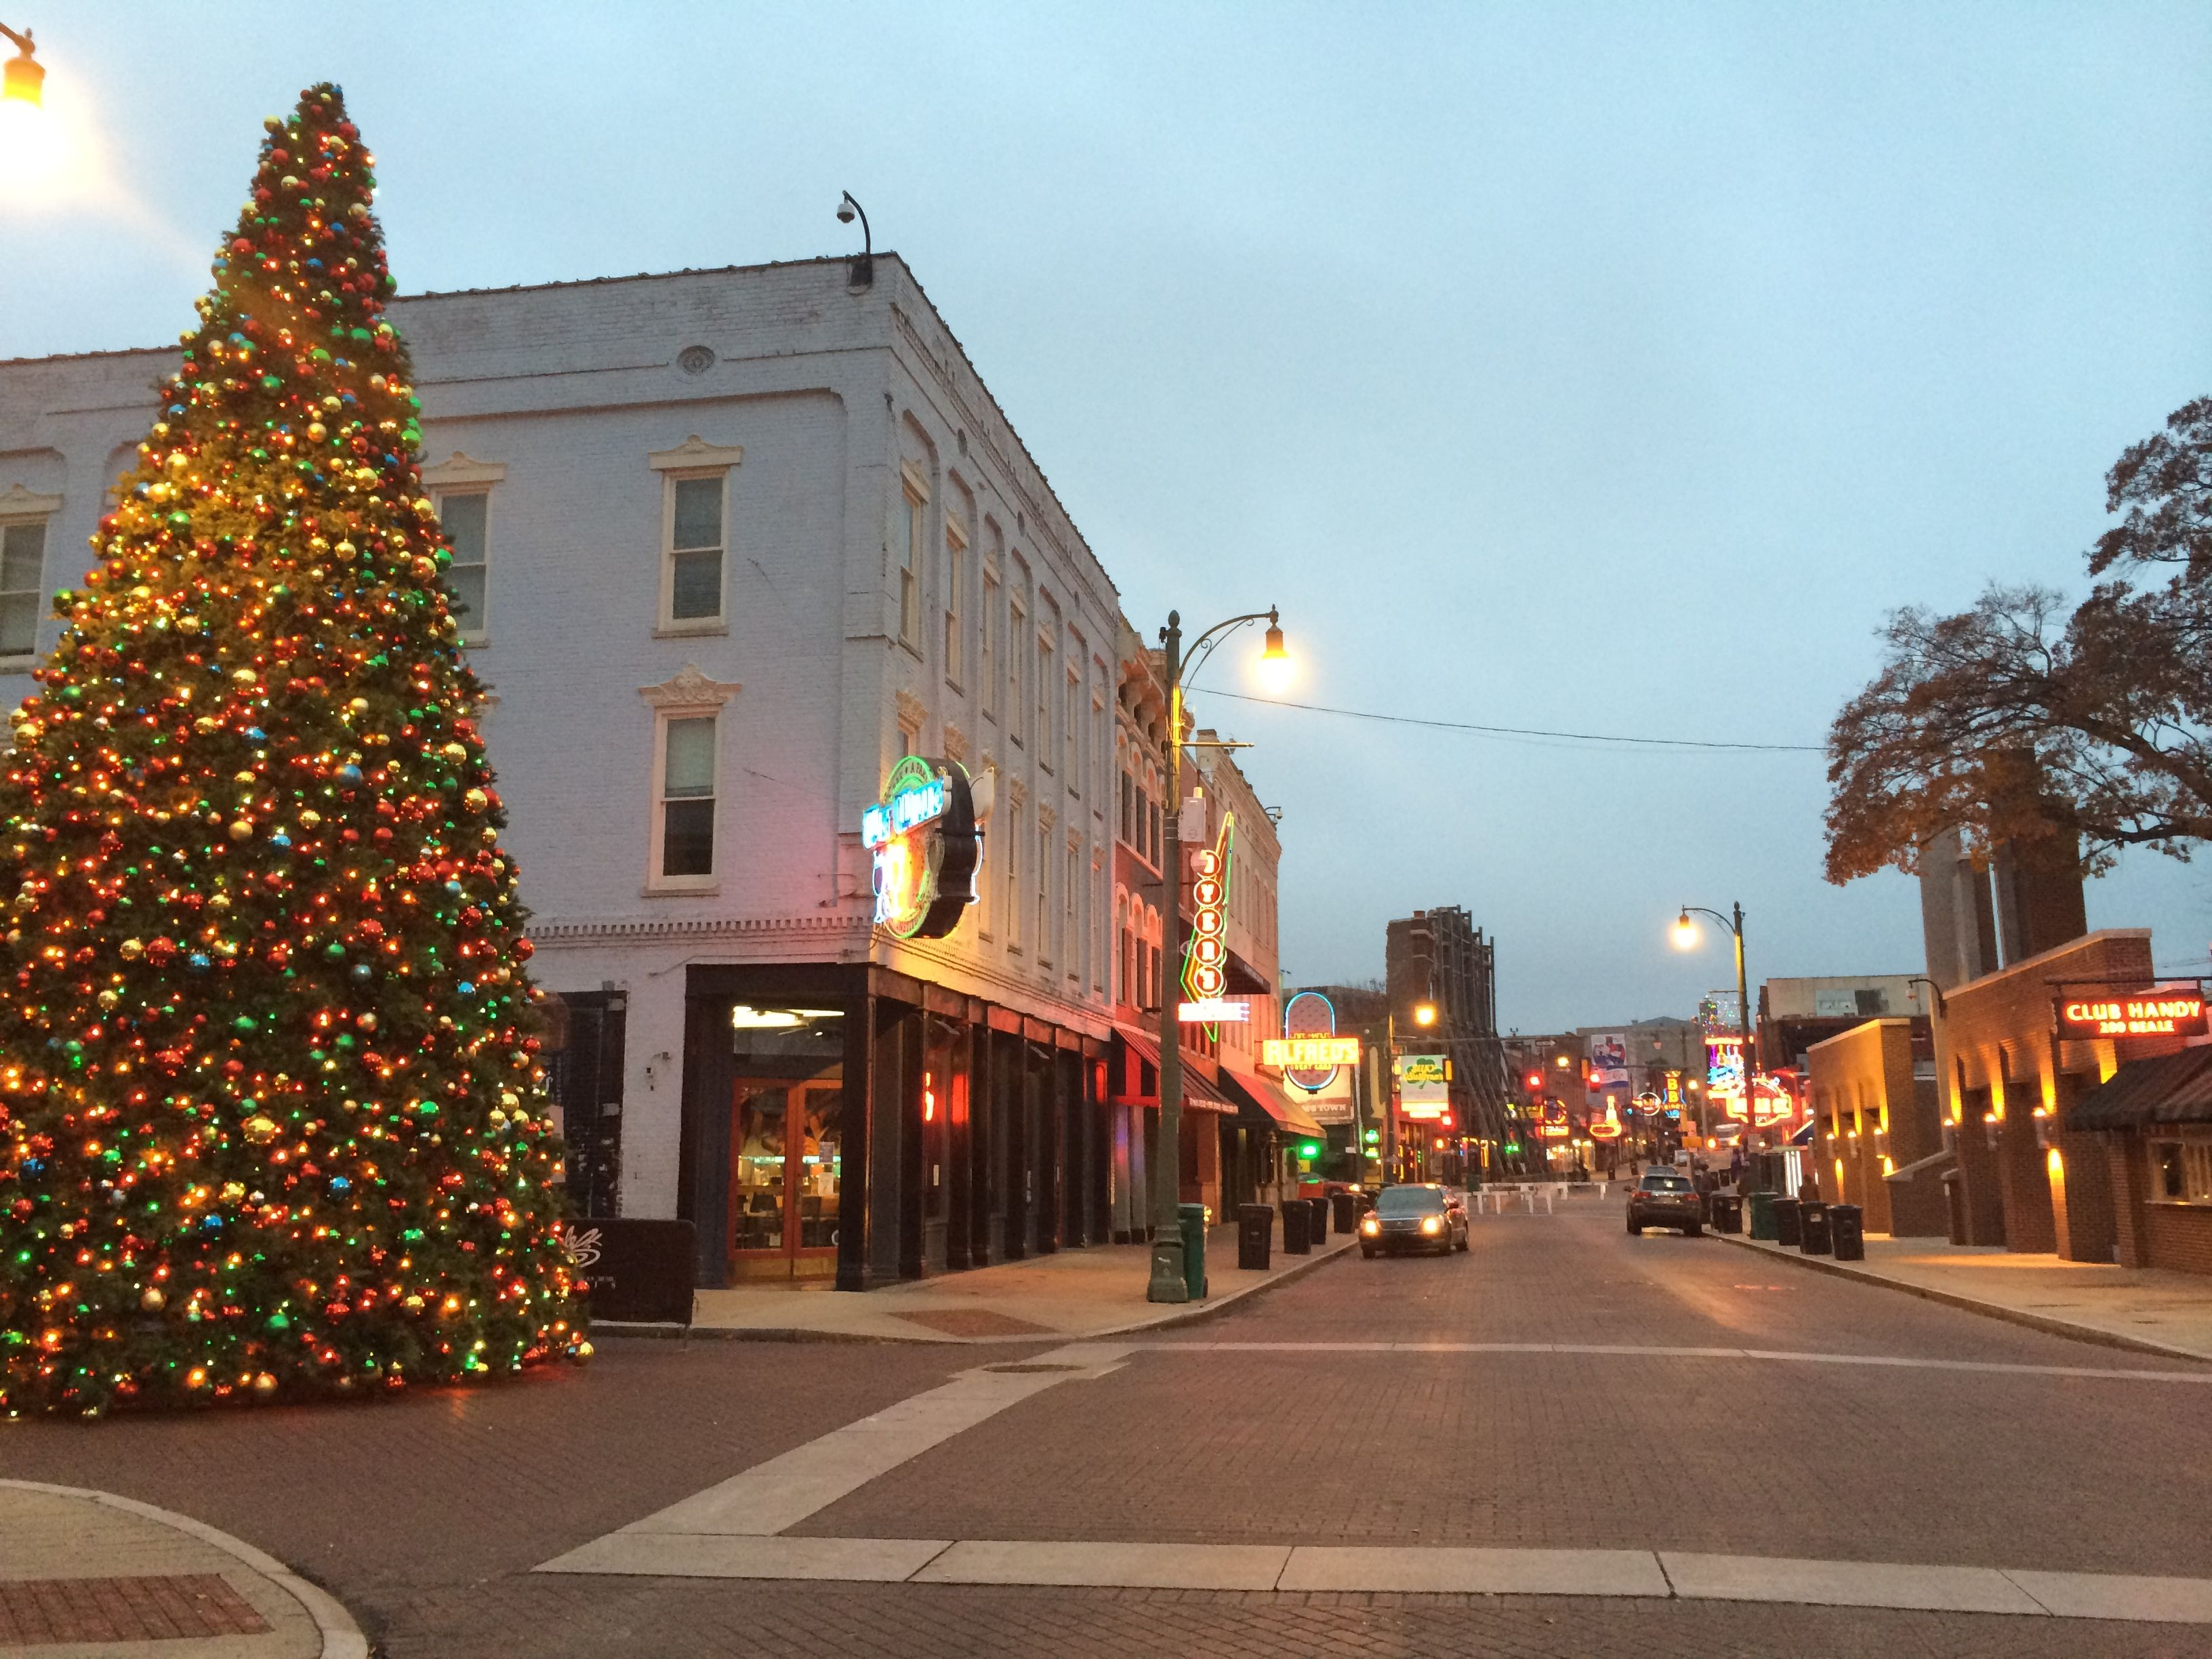 Mcminnville Tn Christmas Parade 2021 7 Main Streets In Tennessee That Are Pure Magic During Christmastime